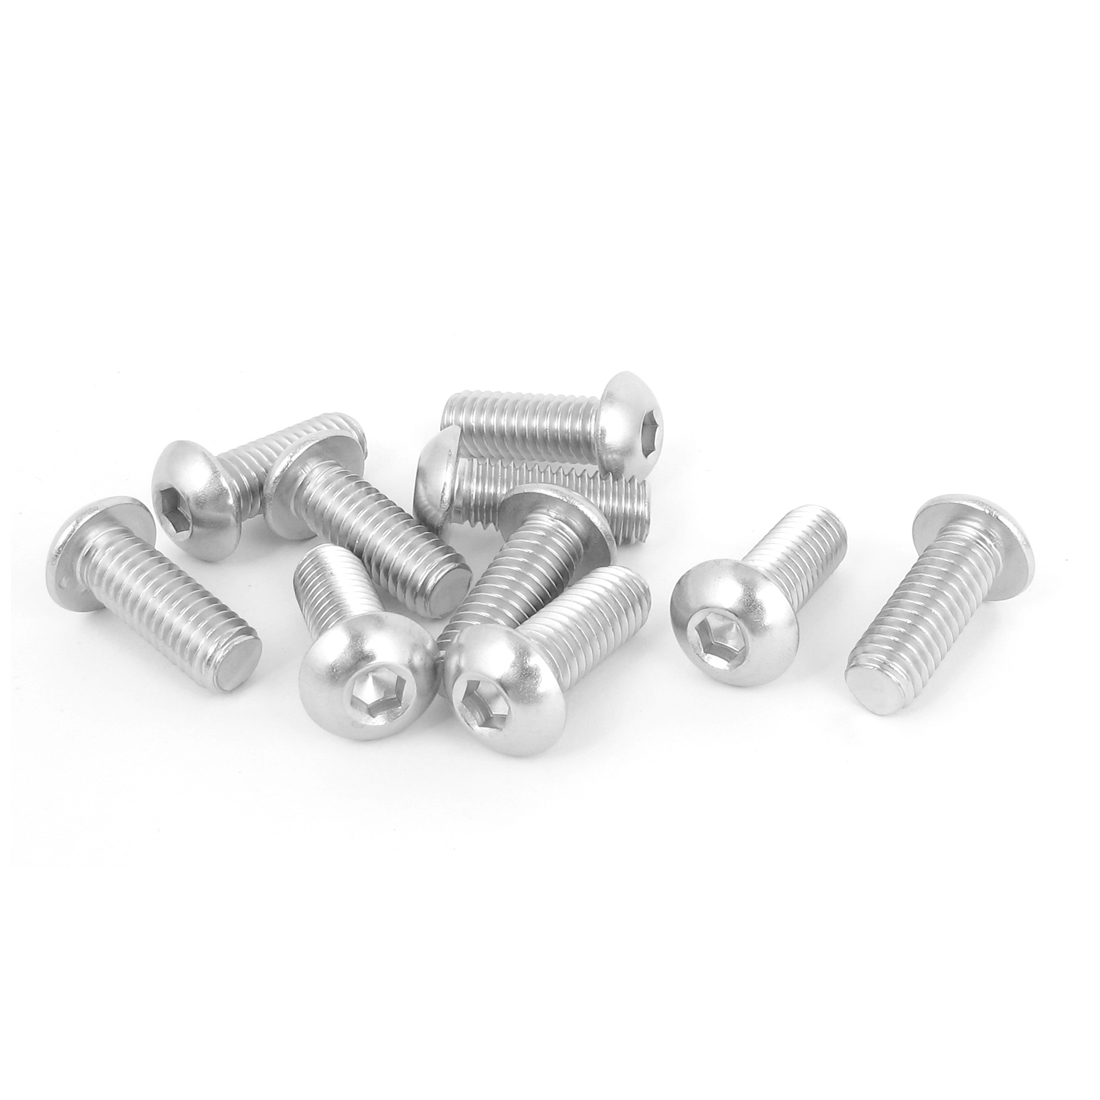 "10pcs 3/8""-16x1"" Stainless Steel Hex Socket Button Head Bolts Screws"